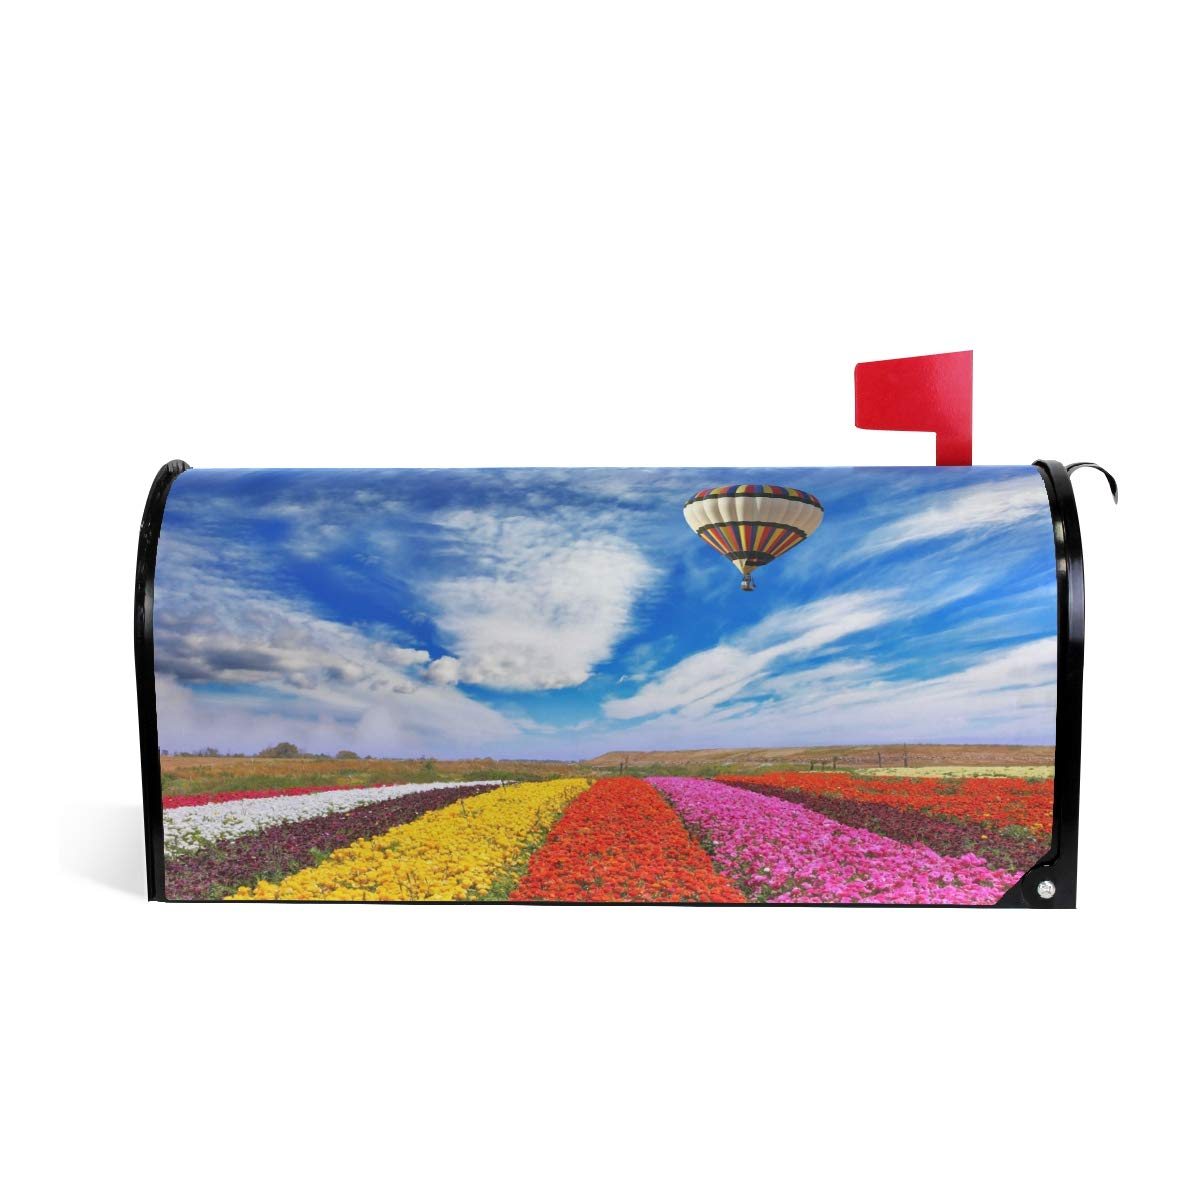 WOOR Air Balloon and Flowers Magnetic Mailbox Cover Standard Size-18''x 20.8''